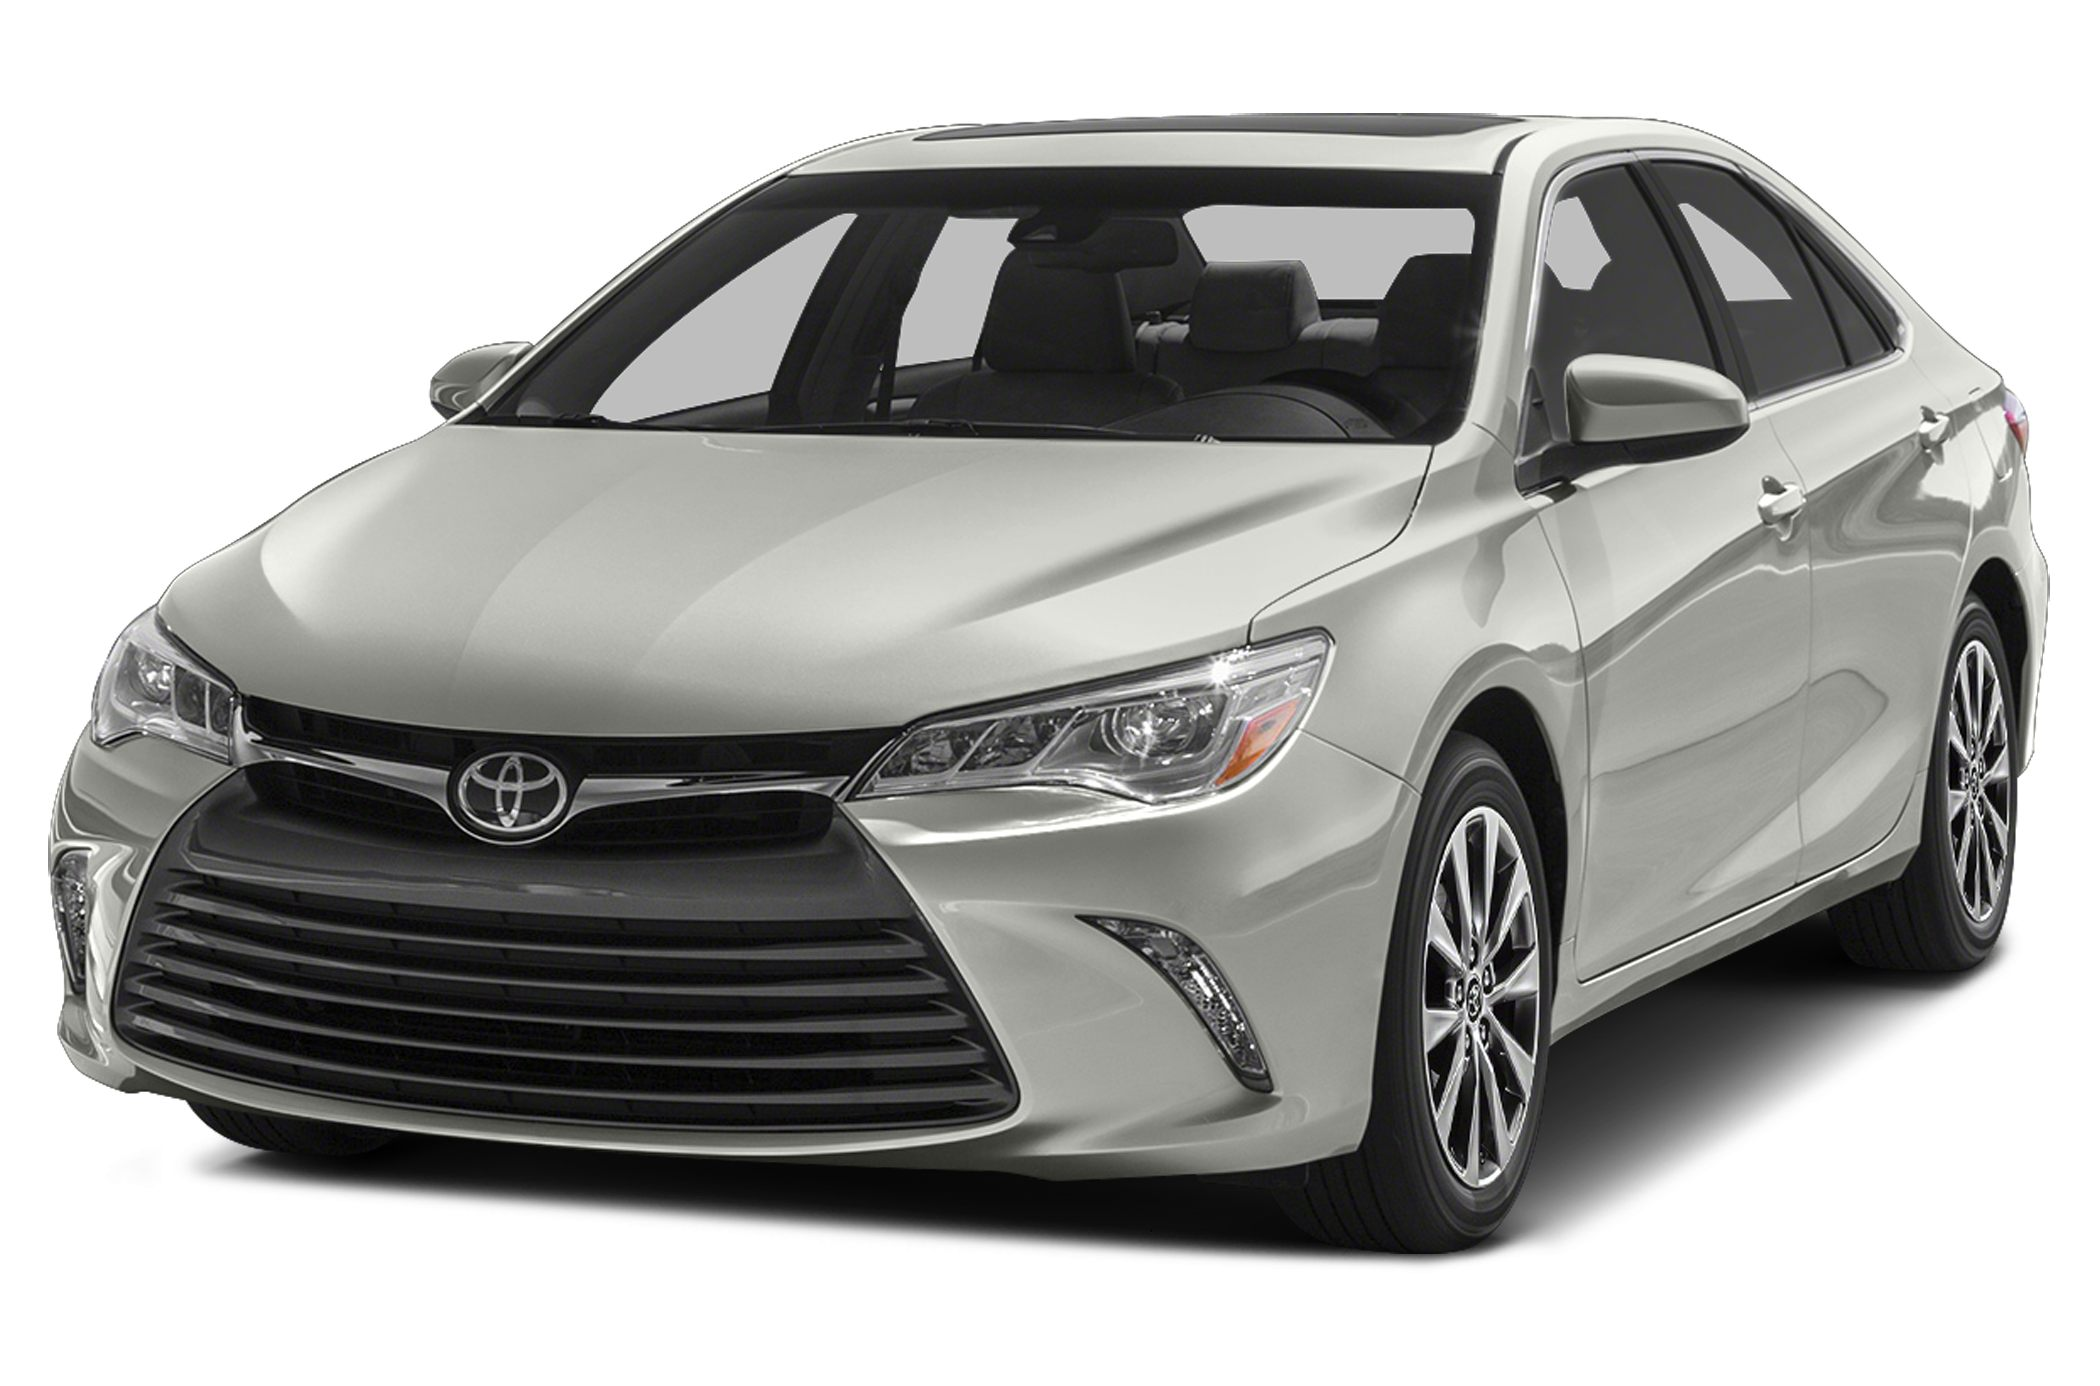 2015 Toyota Camry New Car Test Drive